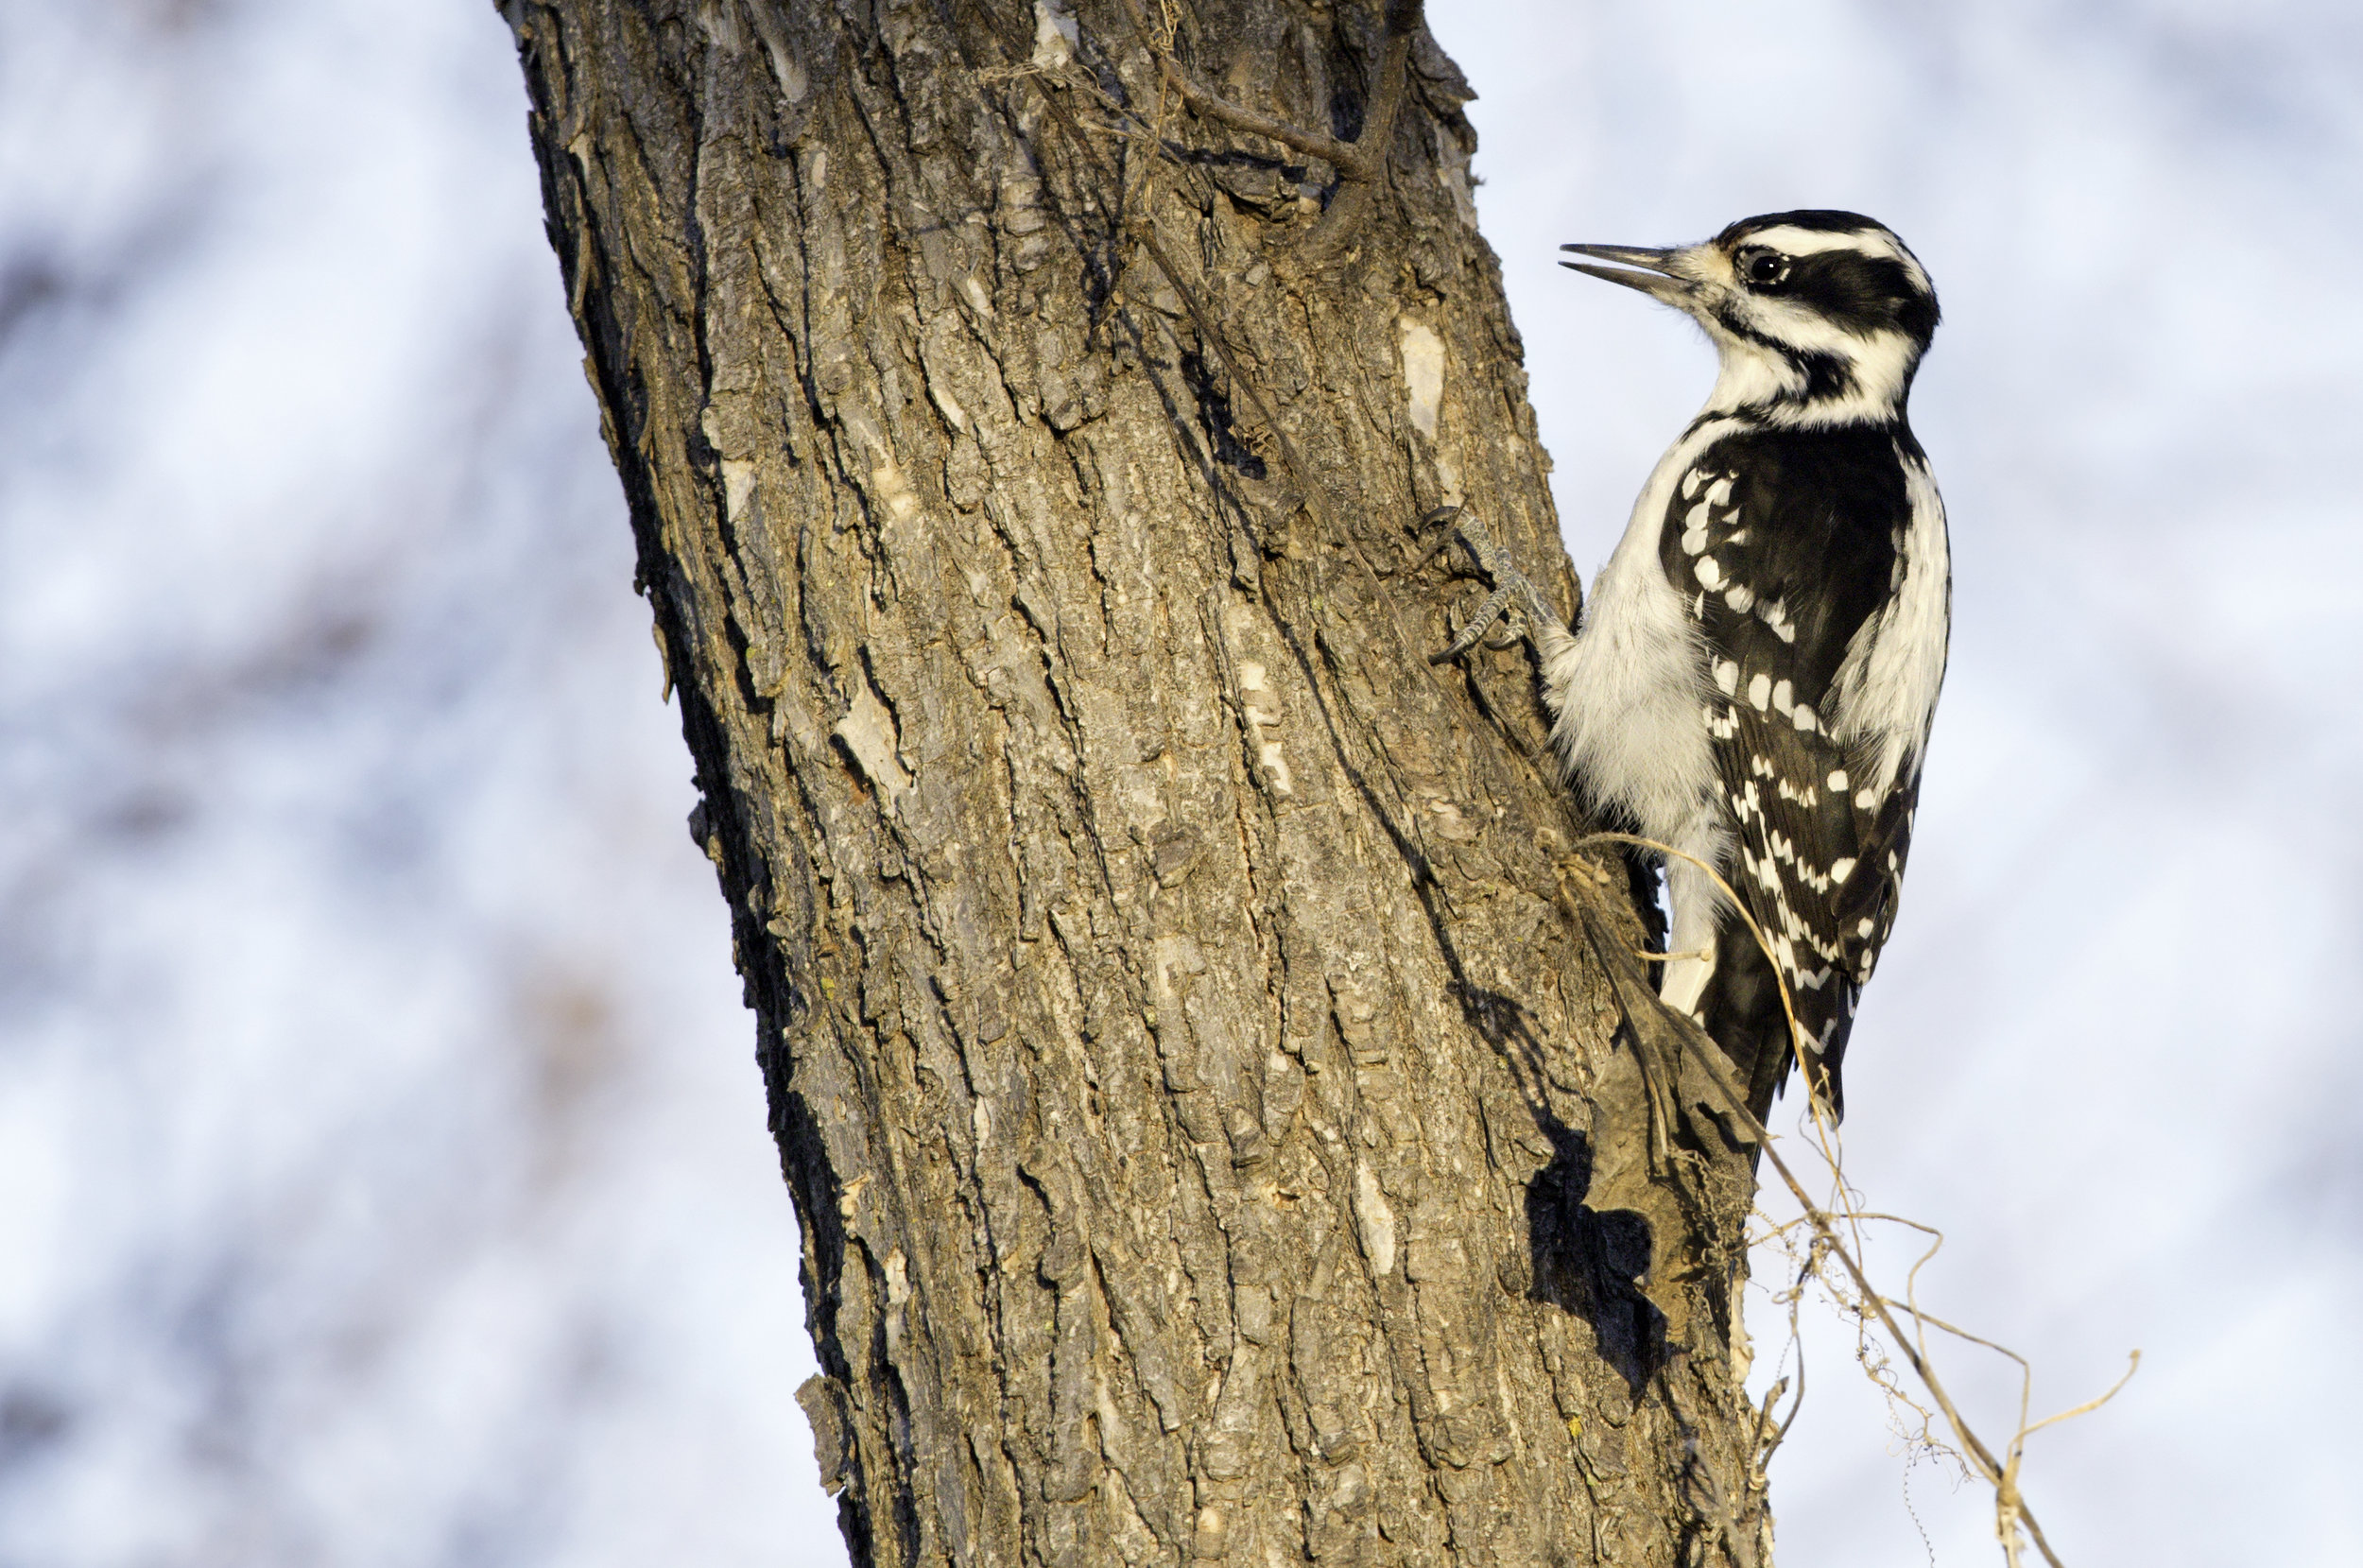 """- Hairy Woodpecker (Picoides villosus)Hairy Woodpeckers live in deciduous, coniferous, and mixed forests. Their diet consists mainly of wood-boring insects, but also includes flying insects, seeds, and some sap. Their wingspan is 13-16.1 in. and they weigh 1.4-3.4 oz. Hairy Woodpeckers and Downy Woodpeckers are often confused with each other, but can be differentiated by their beaks and overall sizes. They drum on trees and make a """"peek"""" noise that is lower than the Downy's. They are protected on the US Migratory Bird list.Photo Credits: Kelly Colgan Azar"""